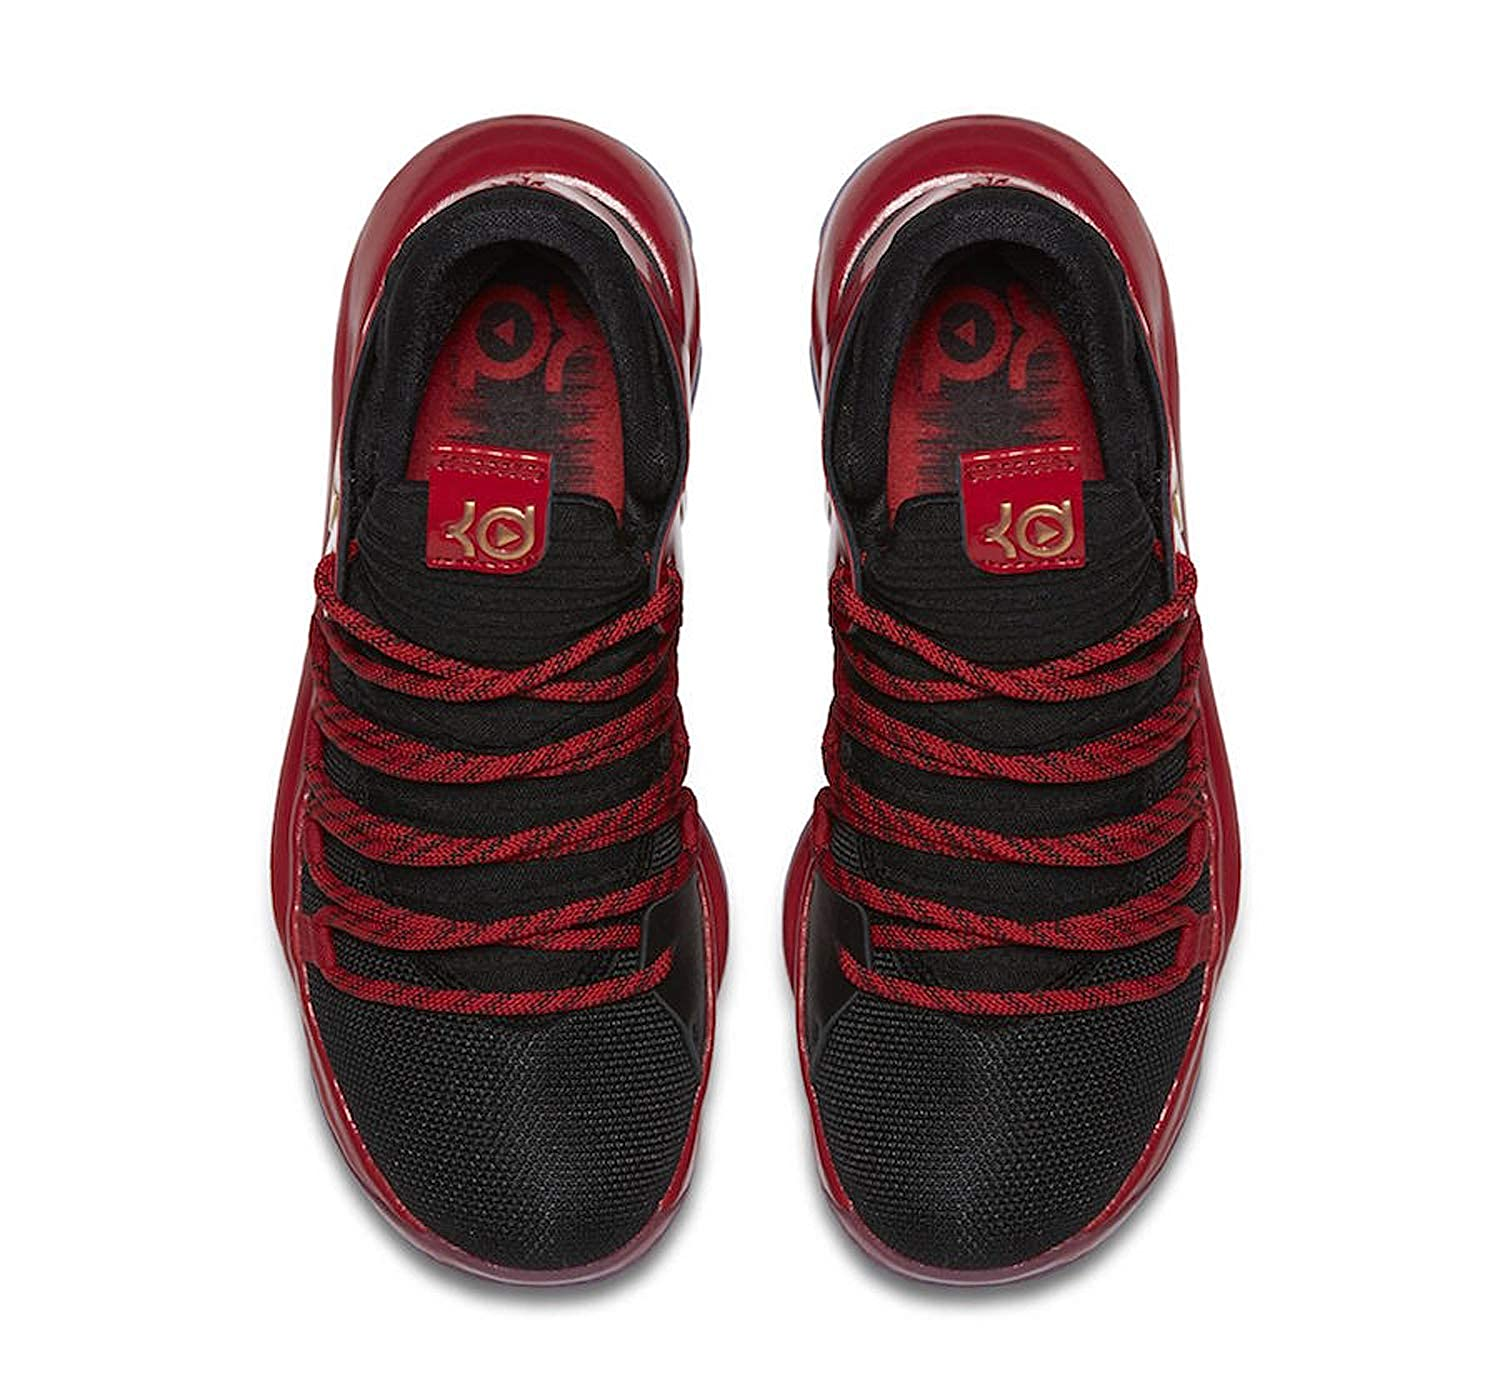 official photos da43e 67f99 Amazon.com   Nike Zoom KD10 Kids Basketball Shoes (4 M US Big Kid, Black Metallic  Gold University Red)   Basketball